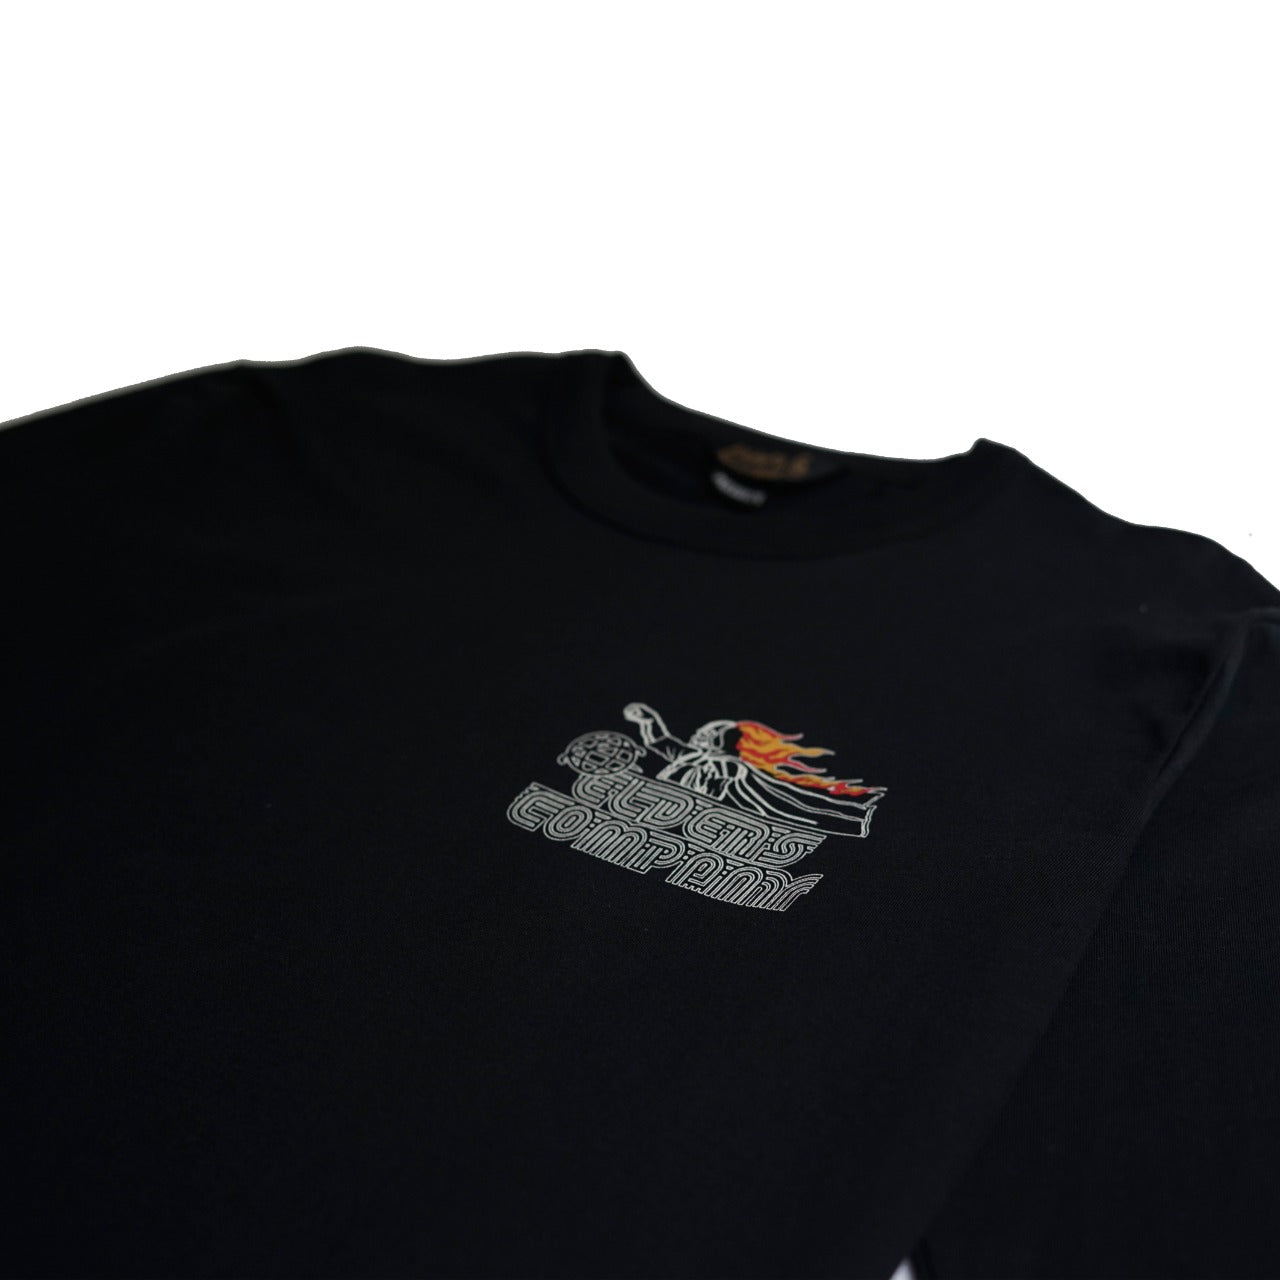 Elders NFS II Long Sleeve T-Shirt Black